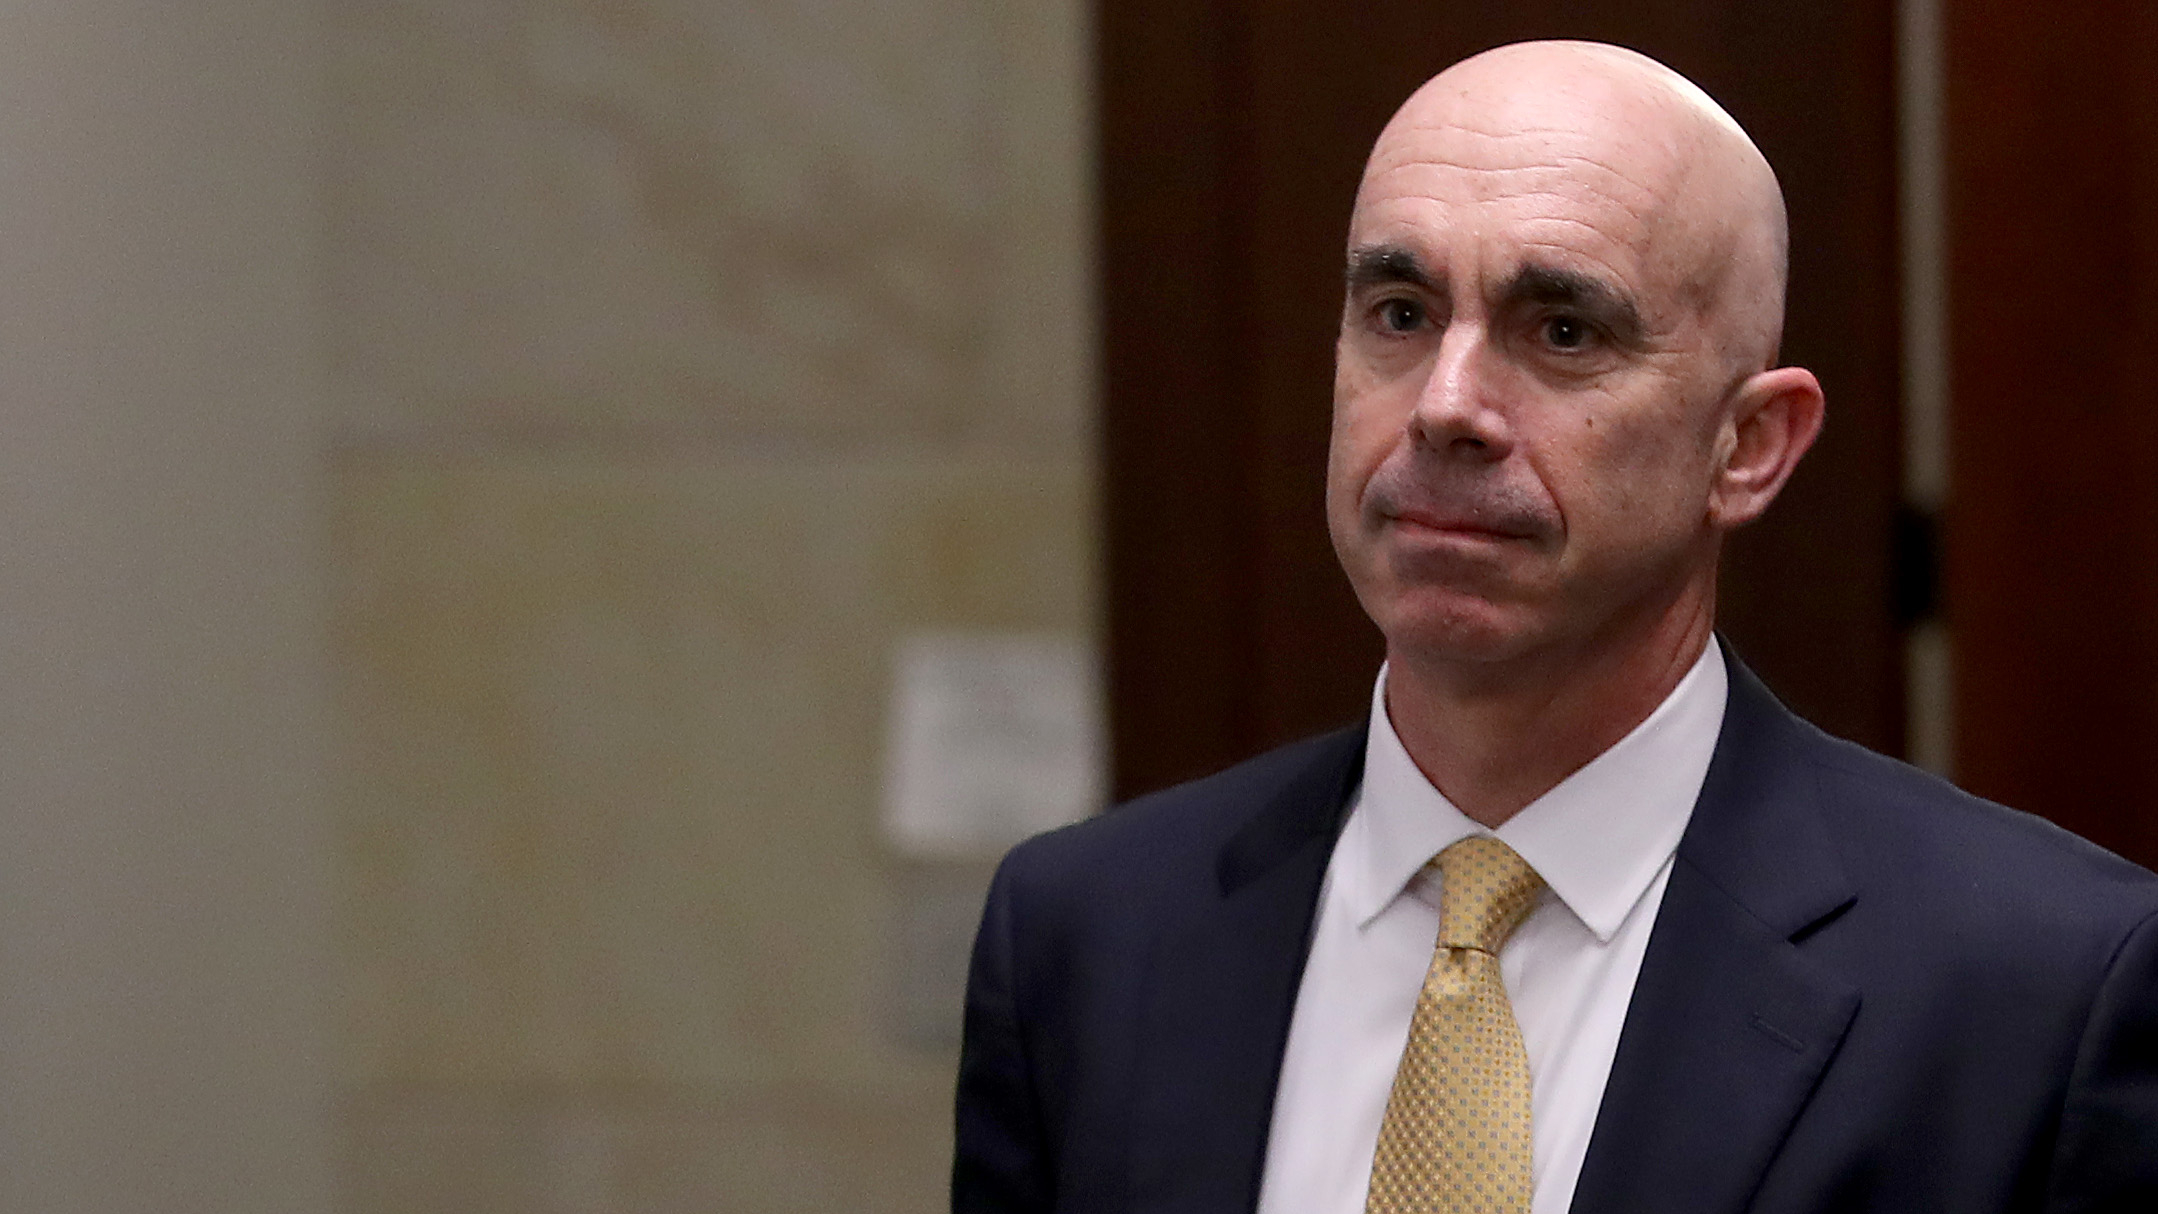 State Department Inspector General Steve Linick departs the U.S. Capitol Oct. 2, 2019. (Win McNamee / Getty Images)